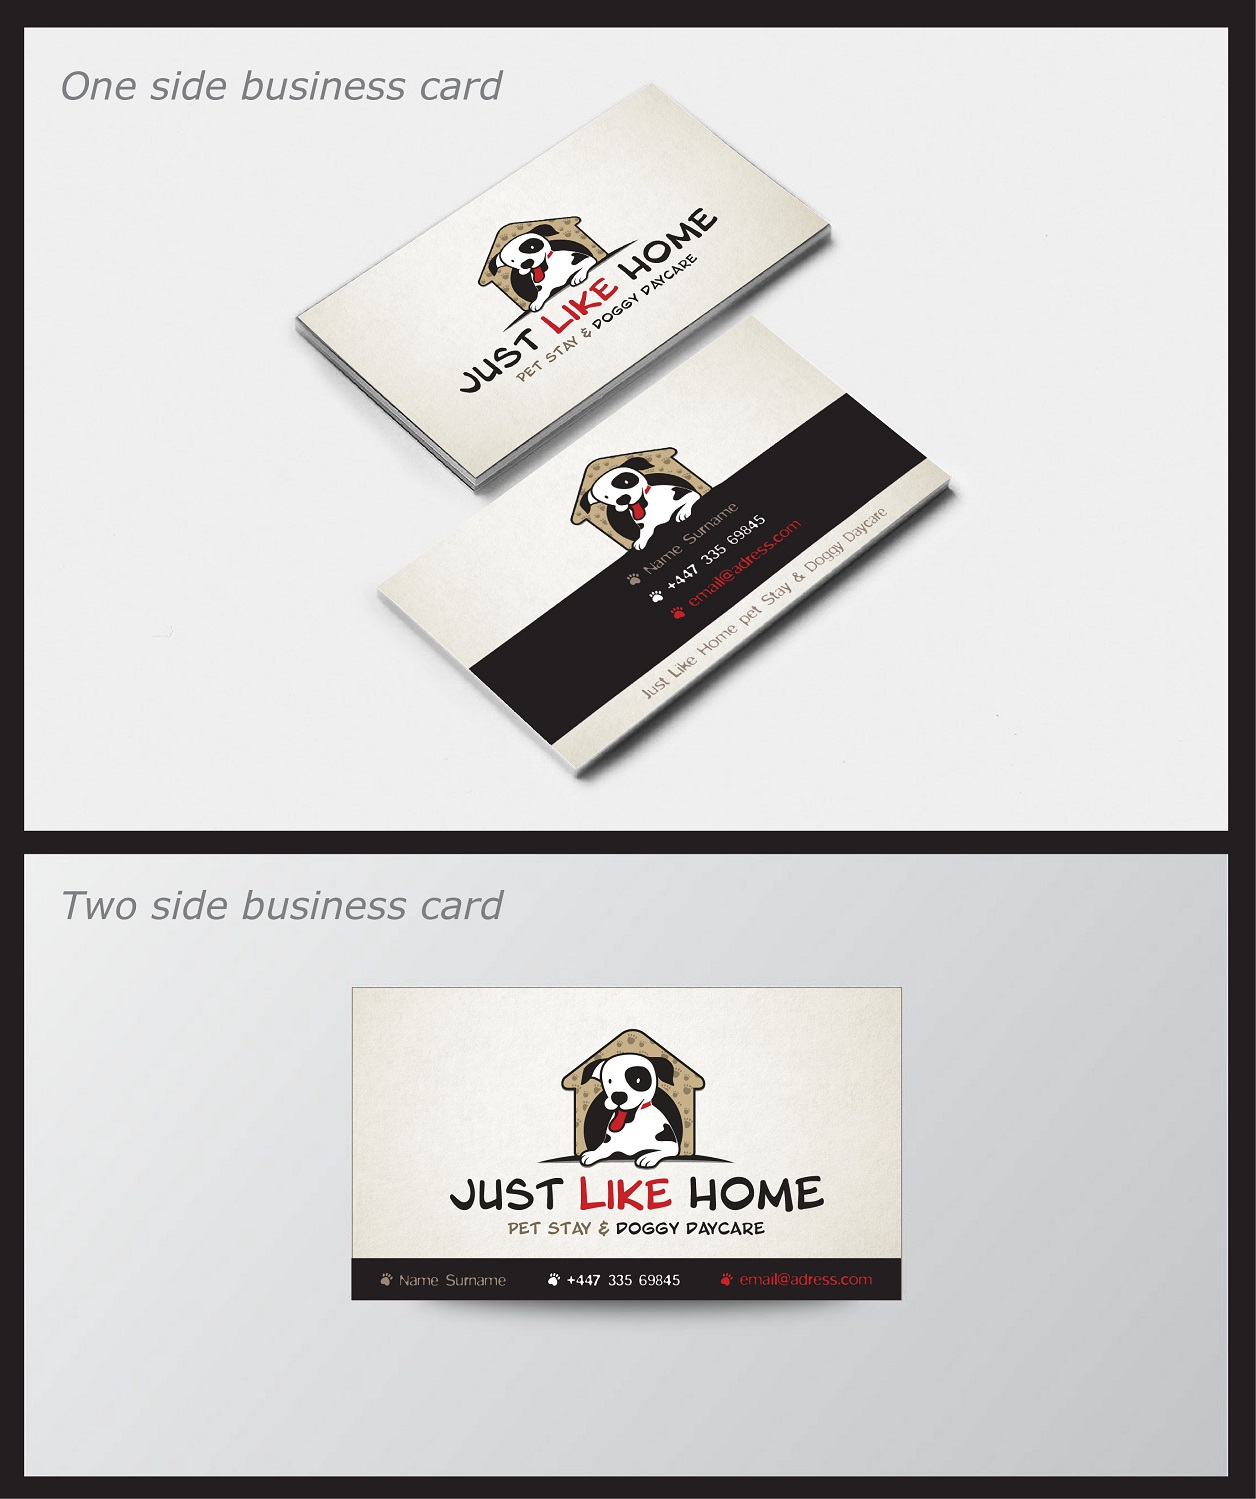 Logo Design For Just Like Home Pet Stay Doggy Daycare By Artyfive